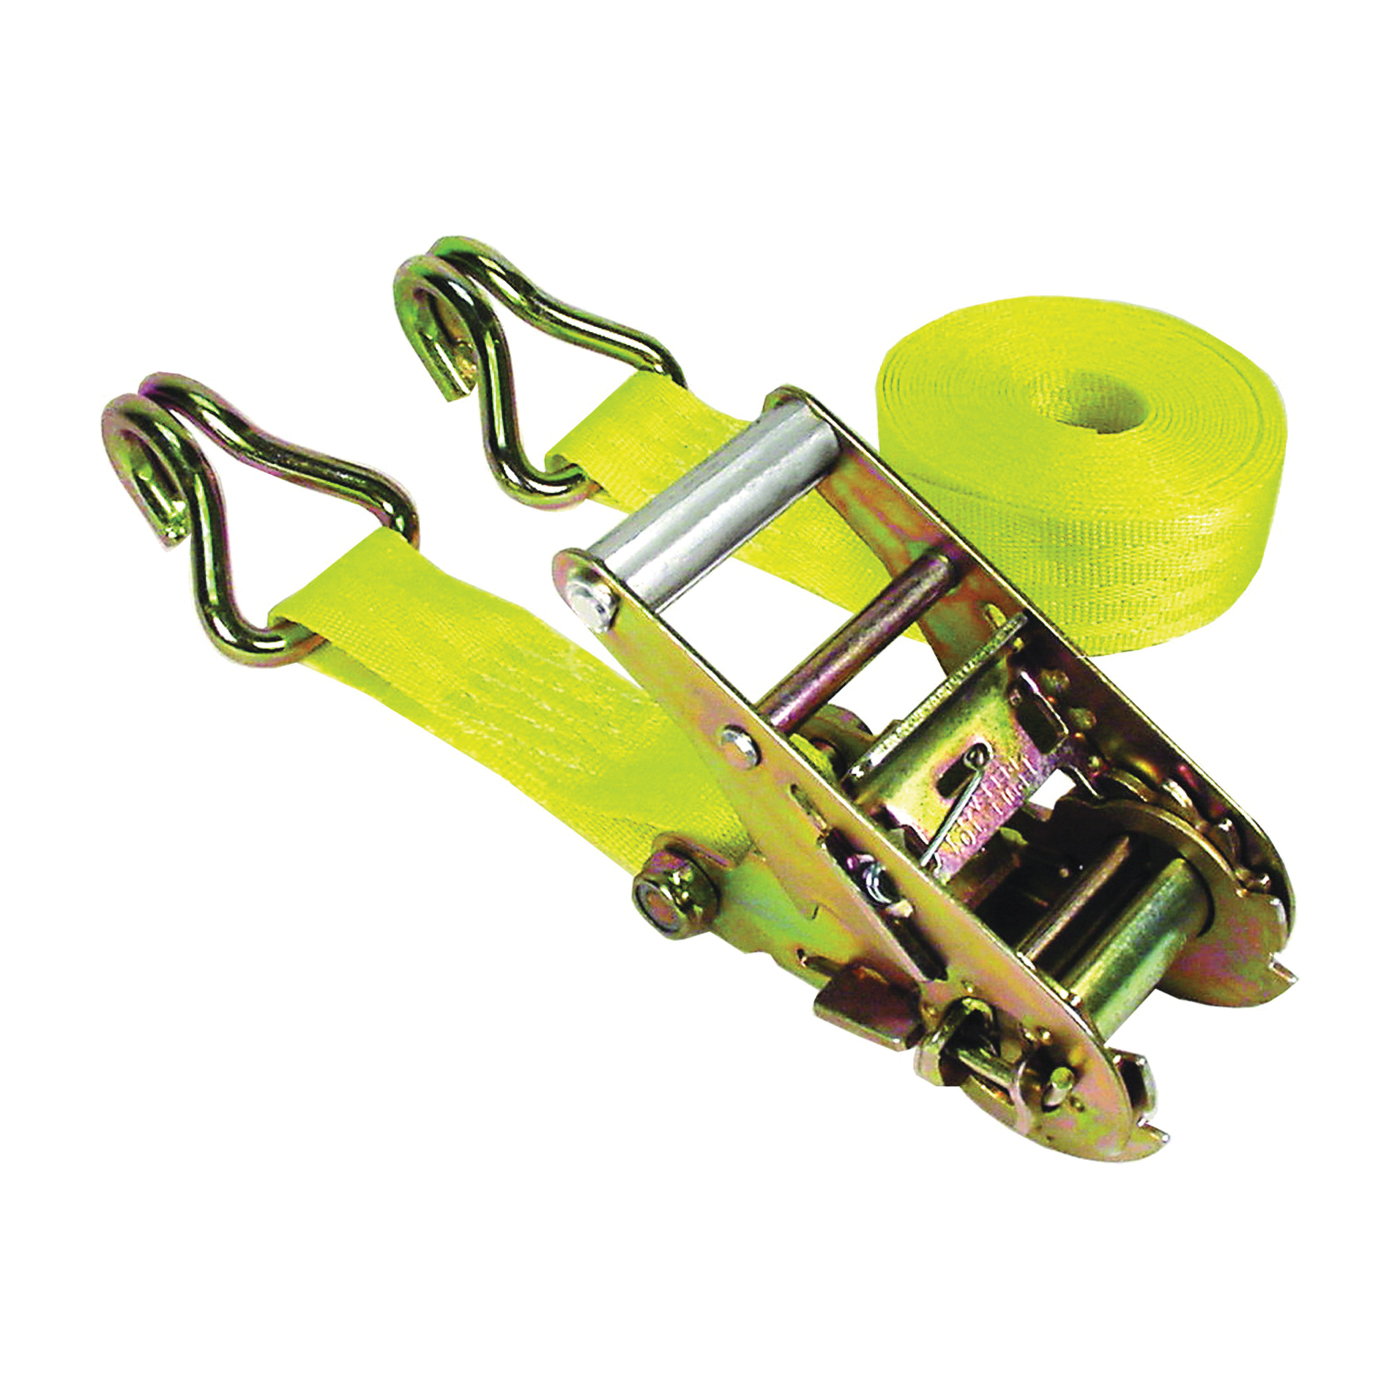 Picture of KEEPER 05519 Tie-Down, 1-3/4 in W, 15 ft L, Polyester, Yellow, 1666 lb, J-Hook End Fitting